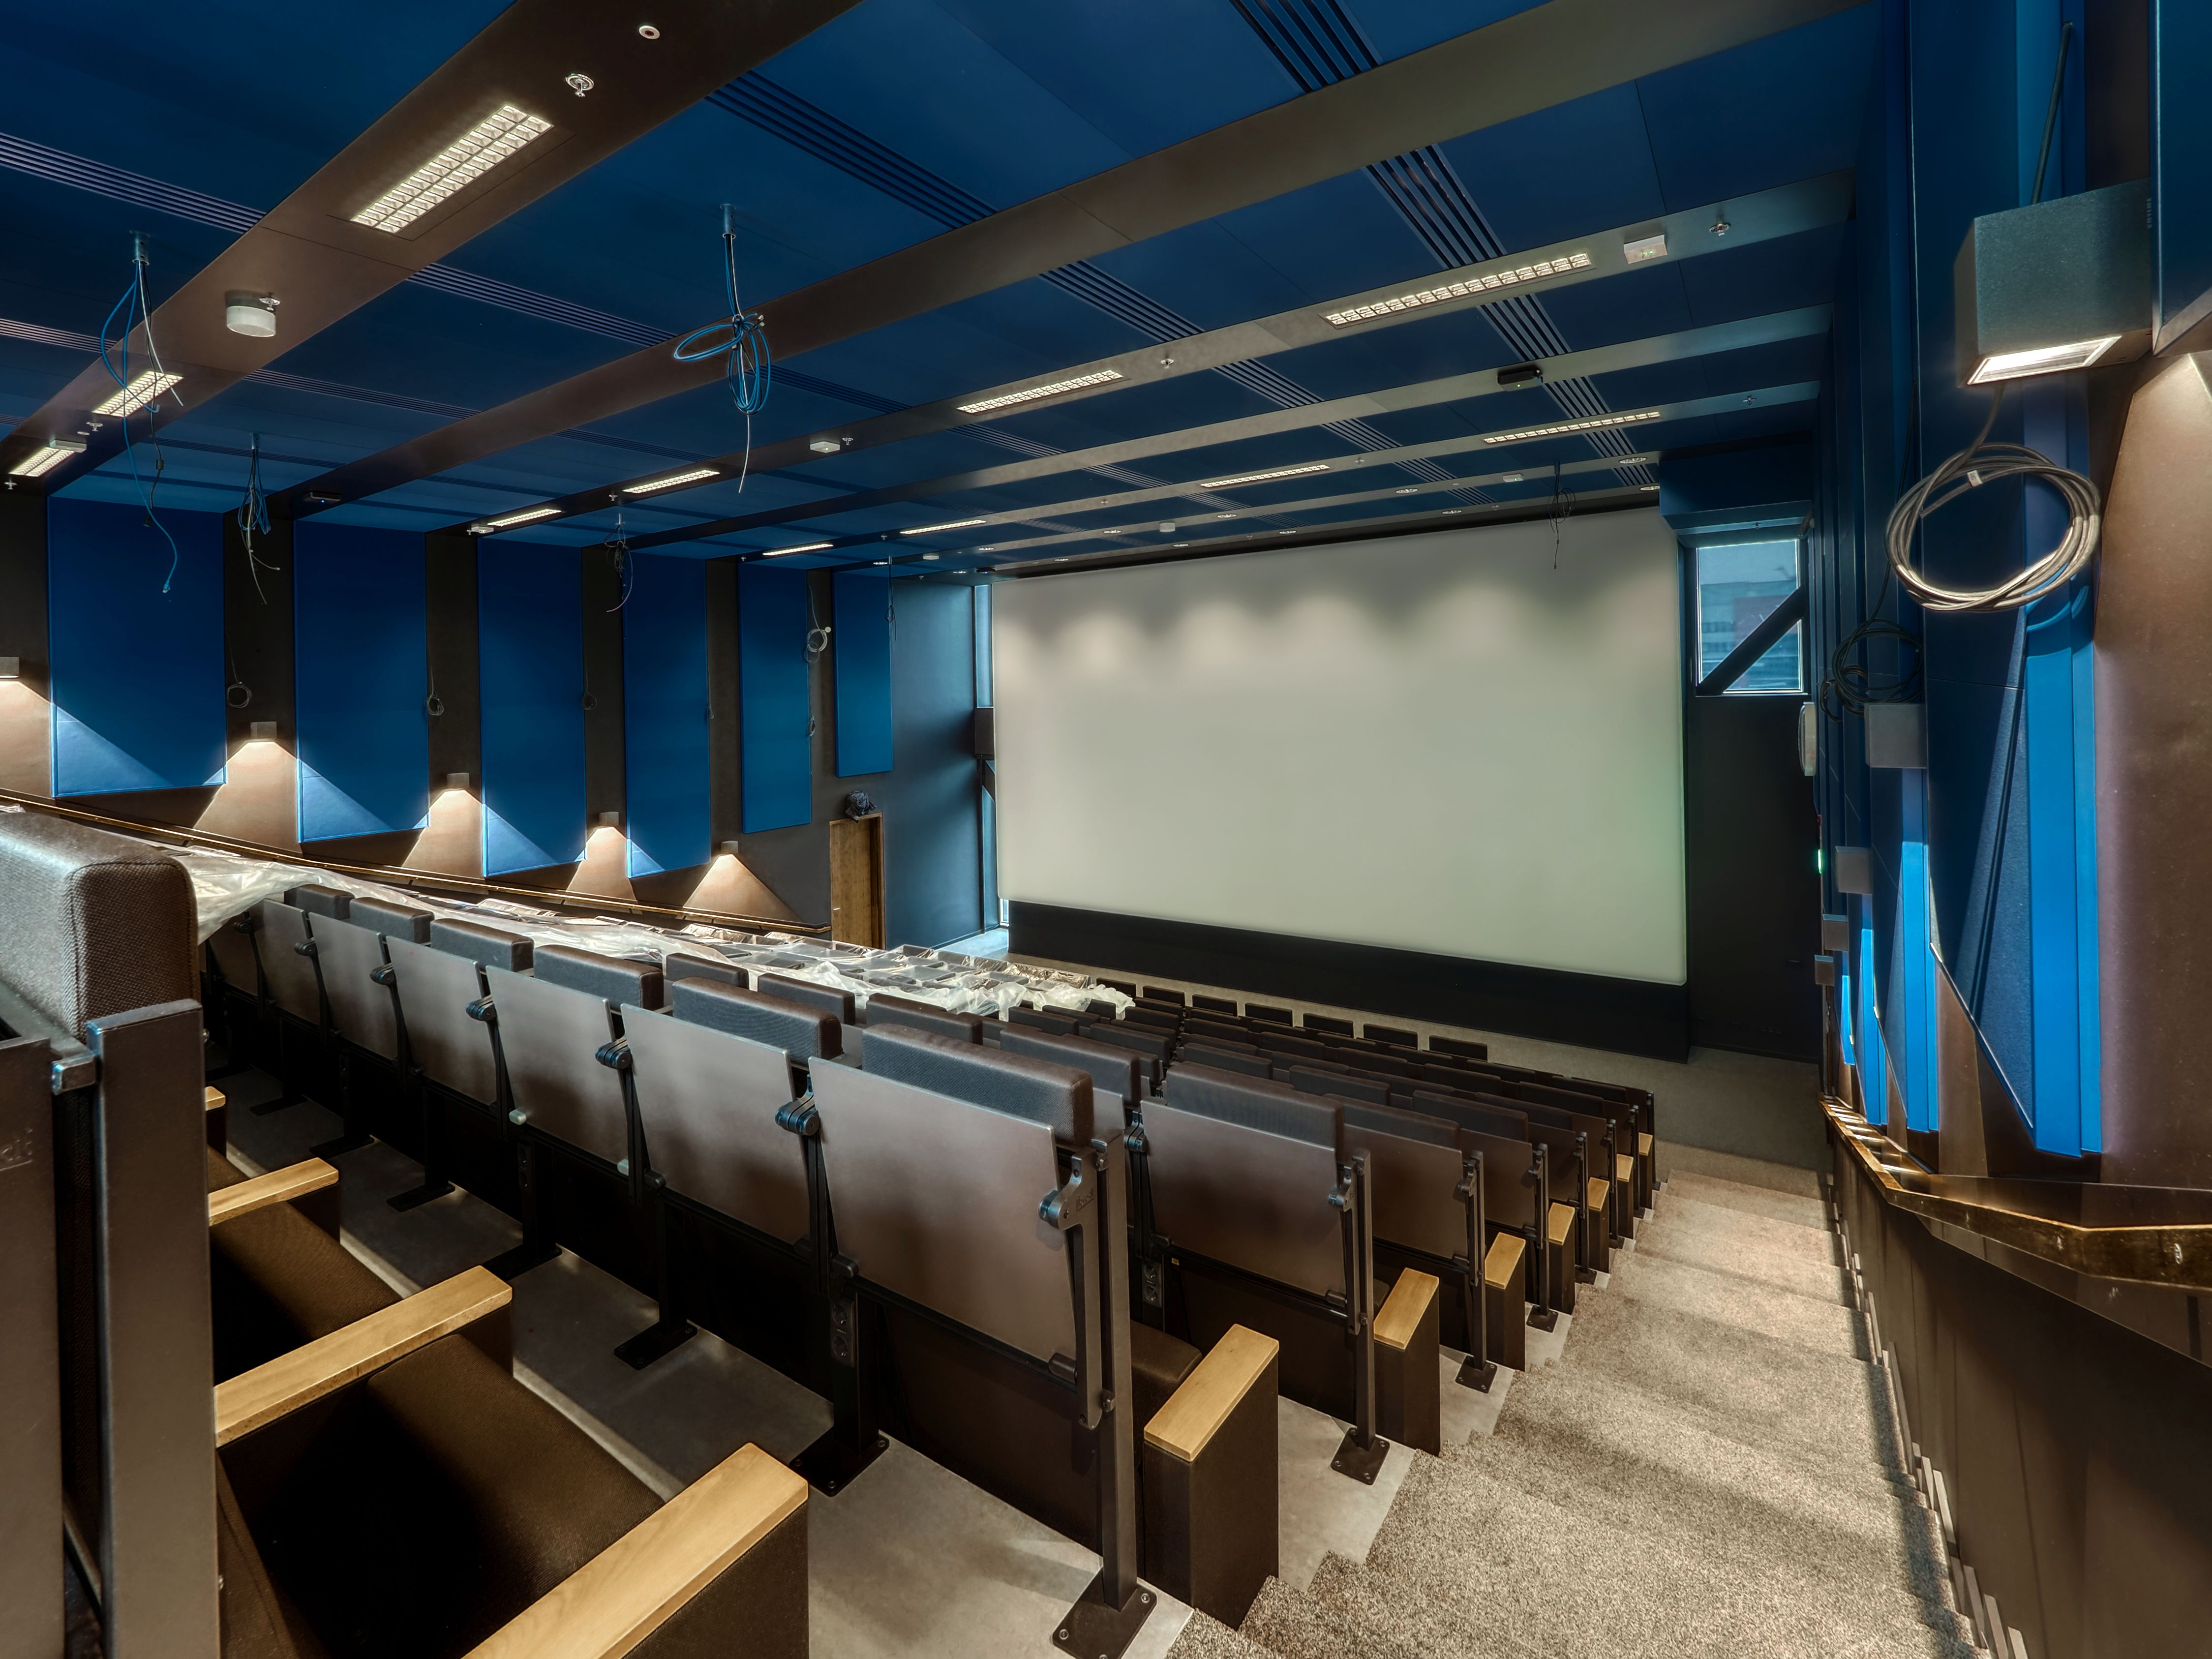 Photograph of the new theatre of Rialto in the NU Building. The seats are empty and the screen is white. The decoration looks industrial, with blue walls and a blue ceiling.